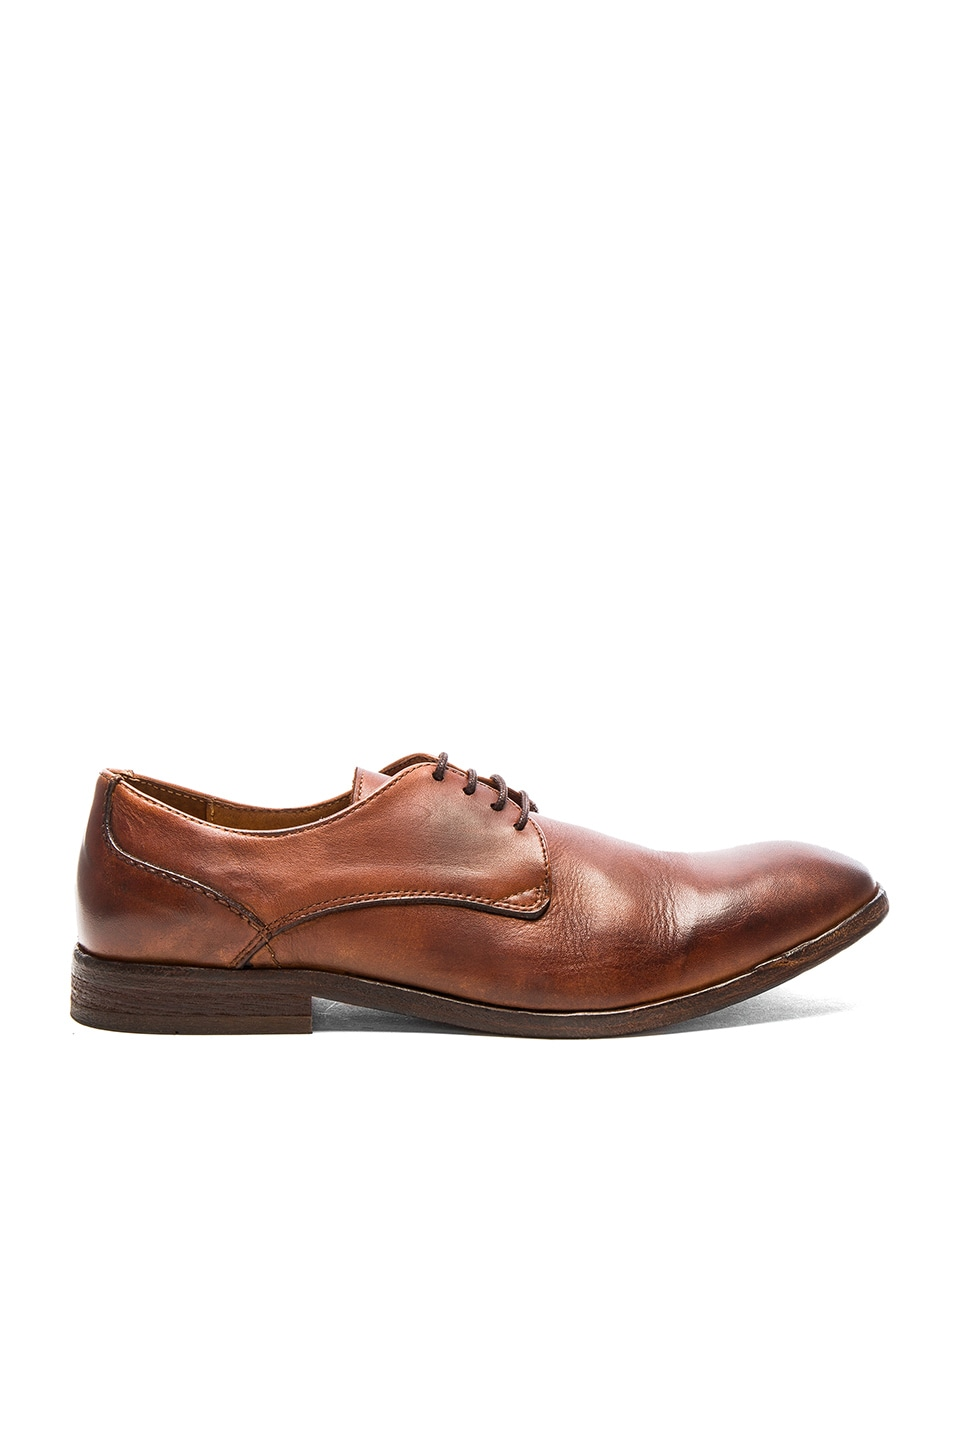 H by Hudson Dylan Oxford in Tan